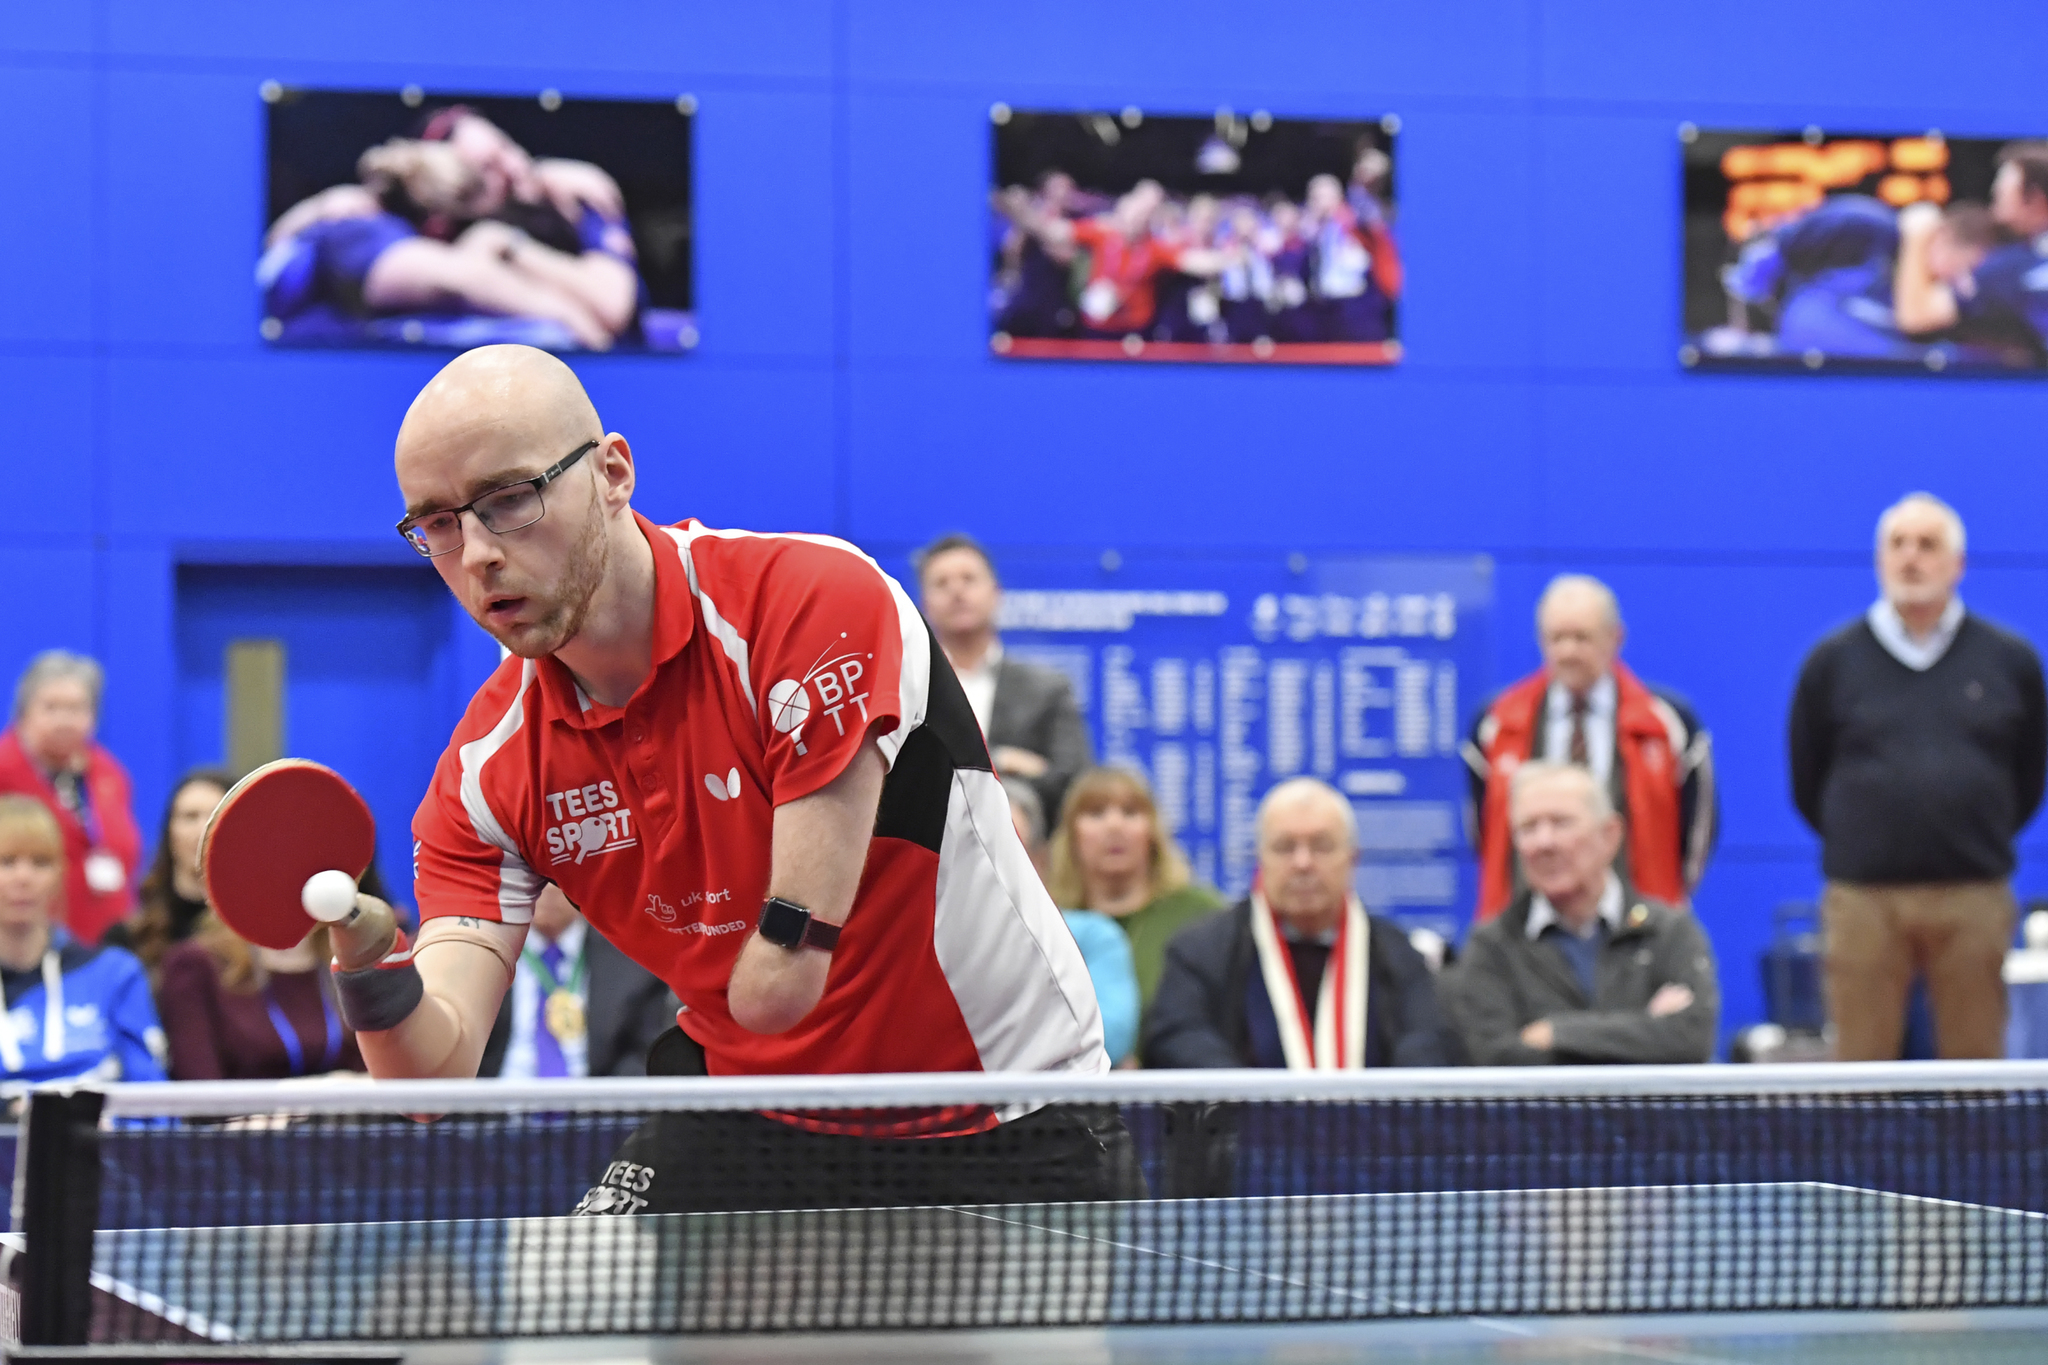 Butterfly and British Para Table Tennis